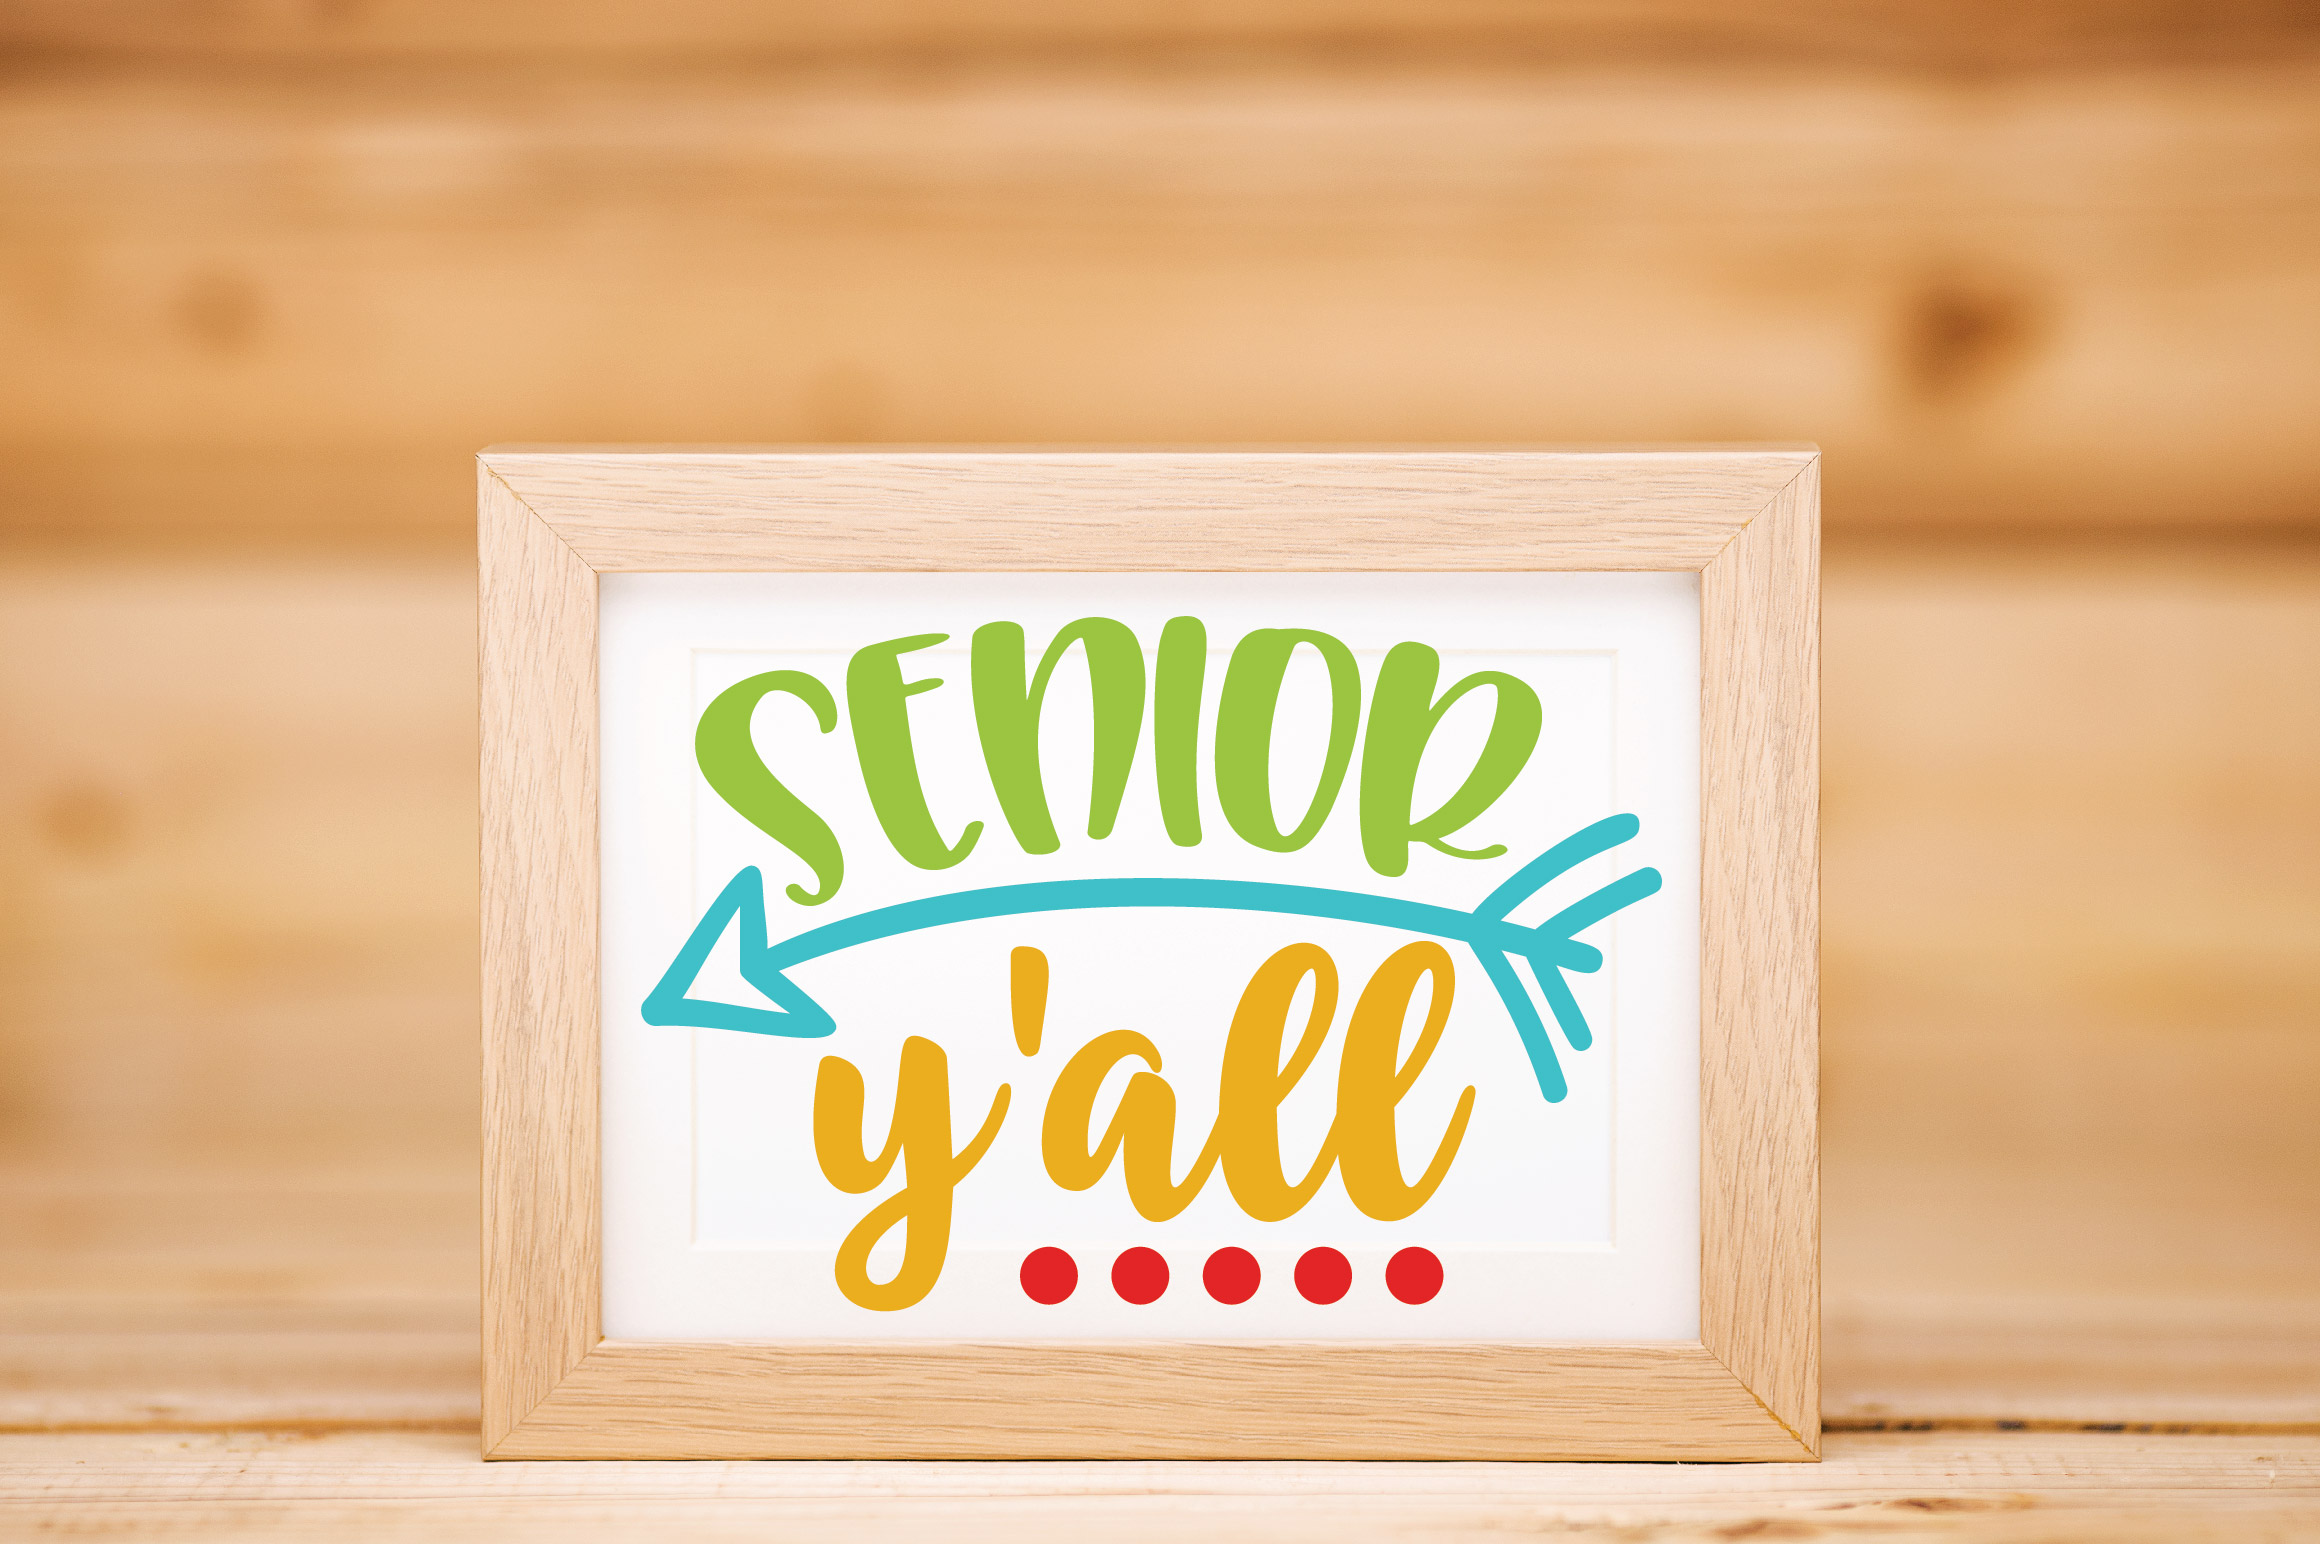 Senior Y'all SVG Cut File - Back to School SVG DXF EPS example image 3